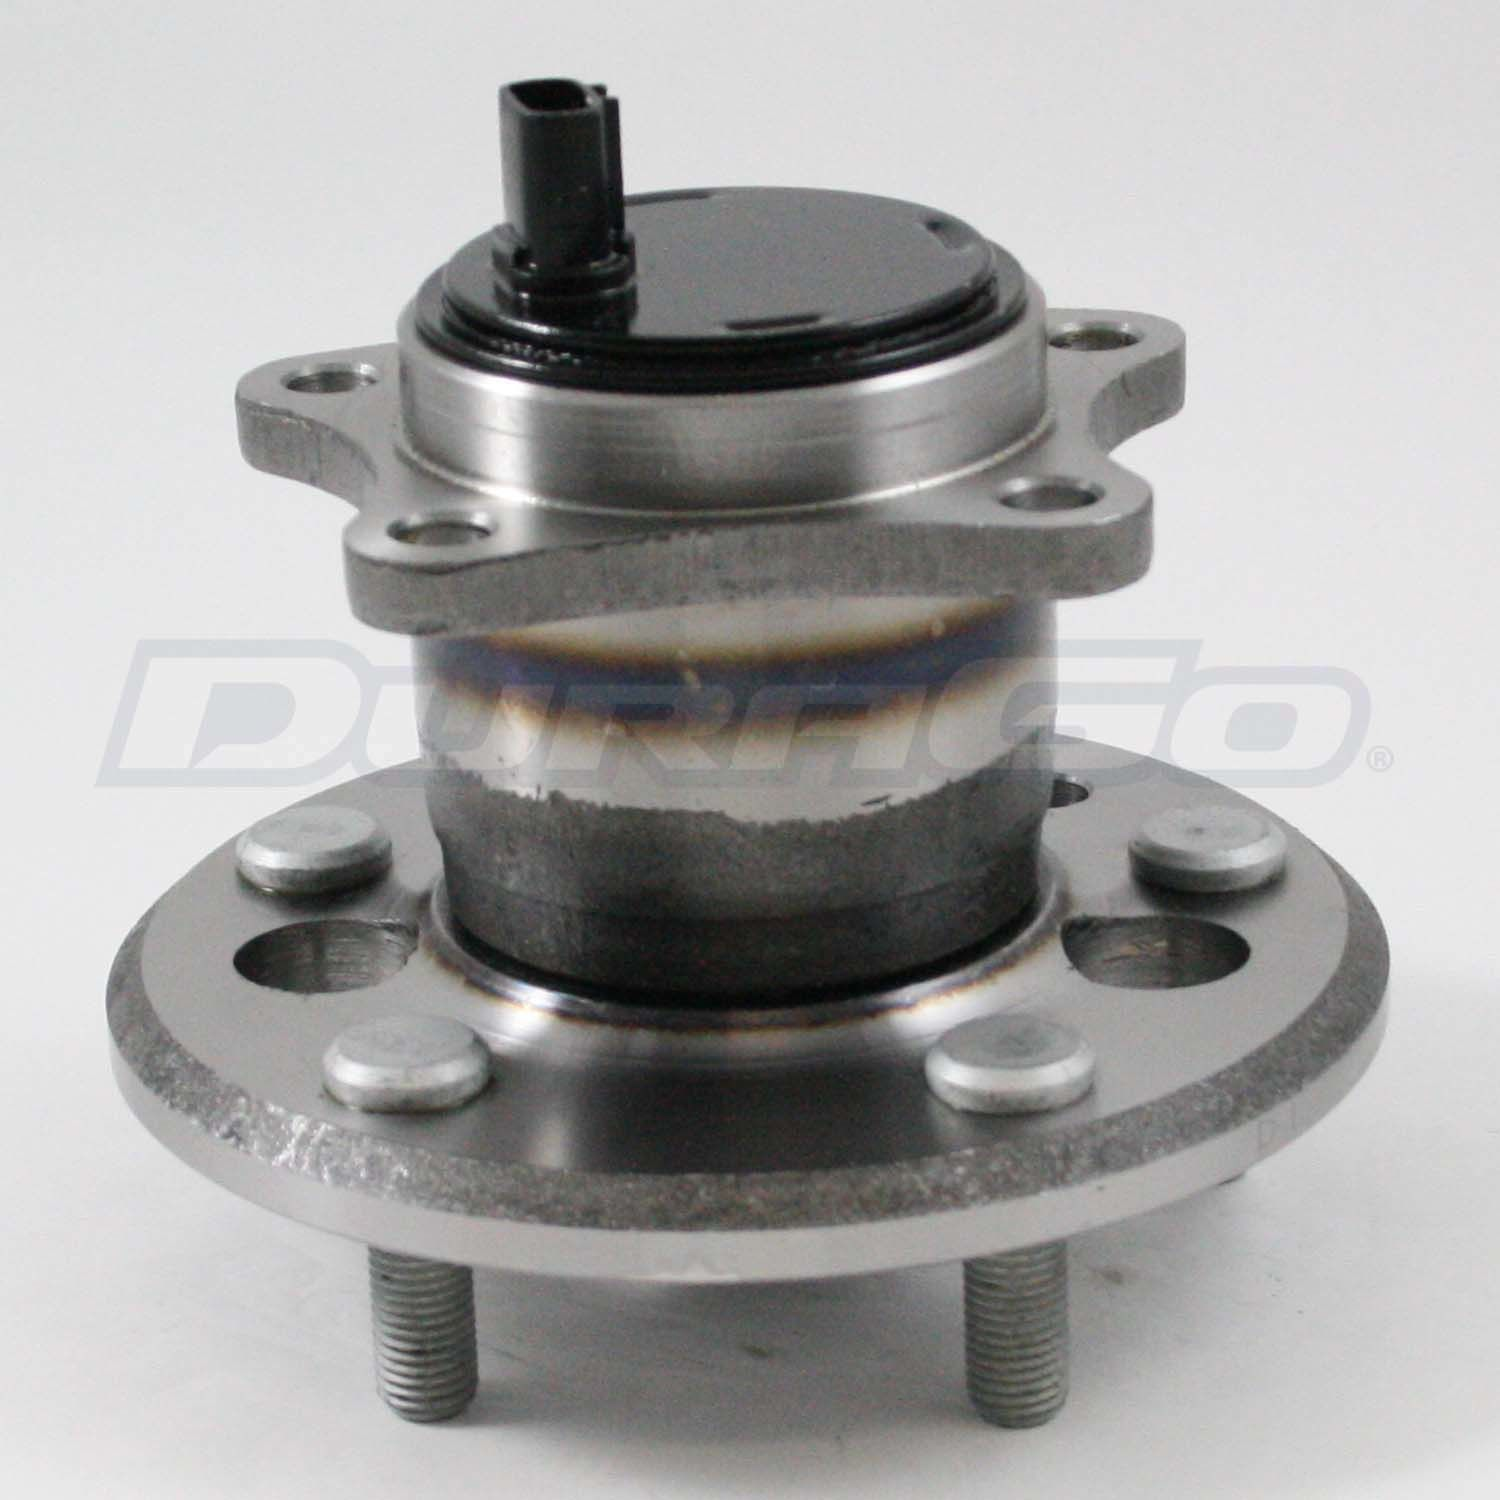 DURAGO - Axle Bearing and Hub Assembly - D48 295-12207